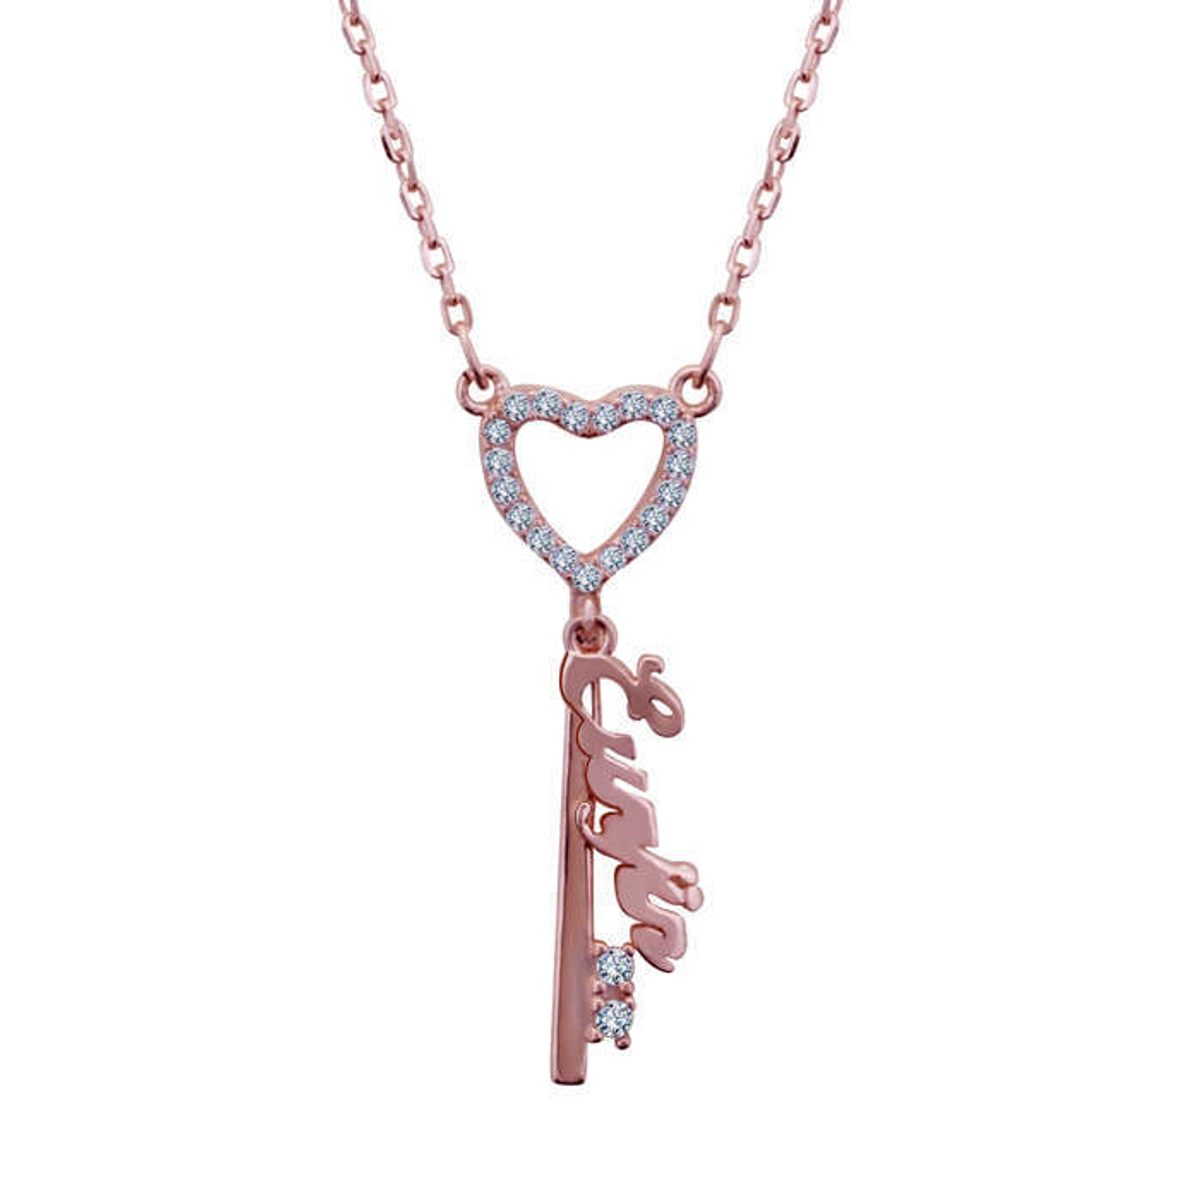 Silver Shine 92 5 Sterling Silver Love Key Rose Gold Necklace For Women Girls